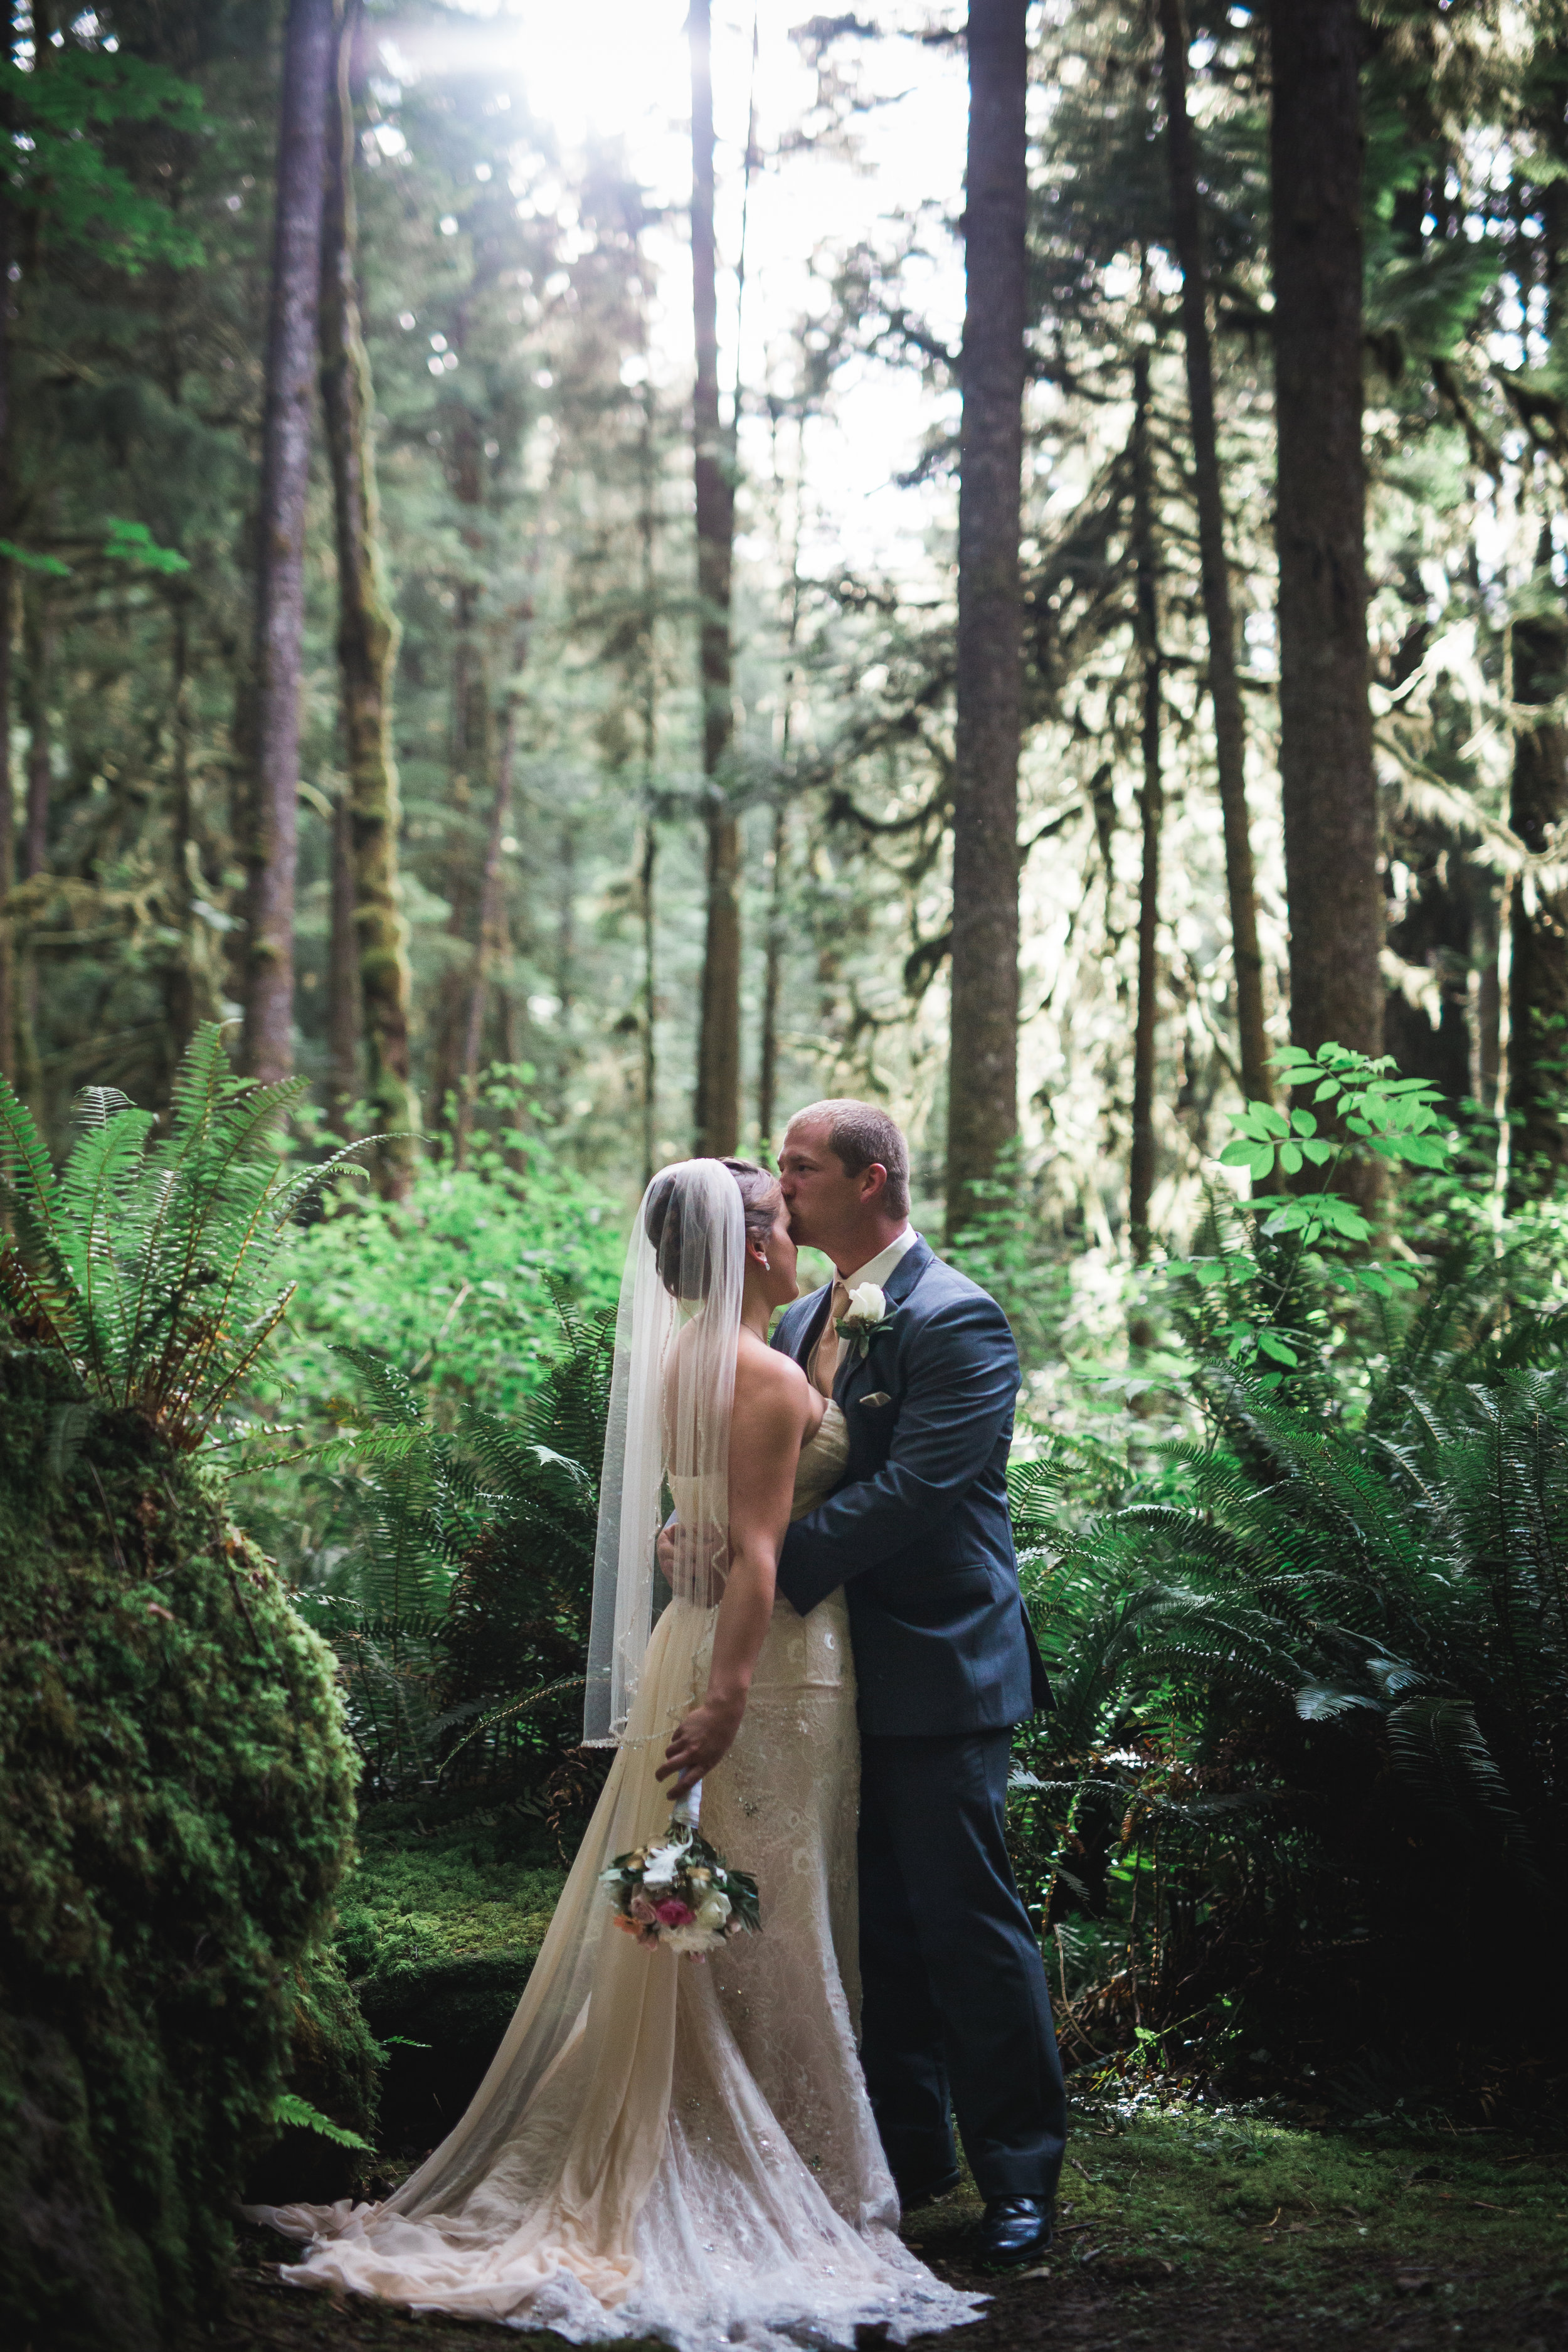 west coast wilderness lodge wedding photographer, jennifer picard wedding photographer, sunshine coast bc wedding photographer